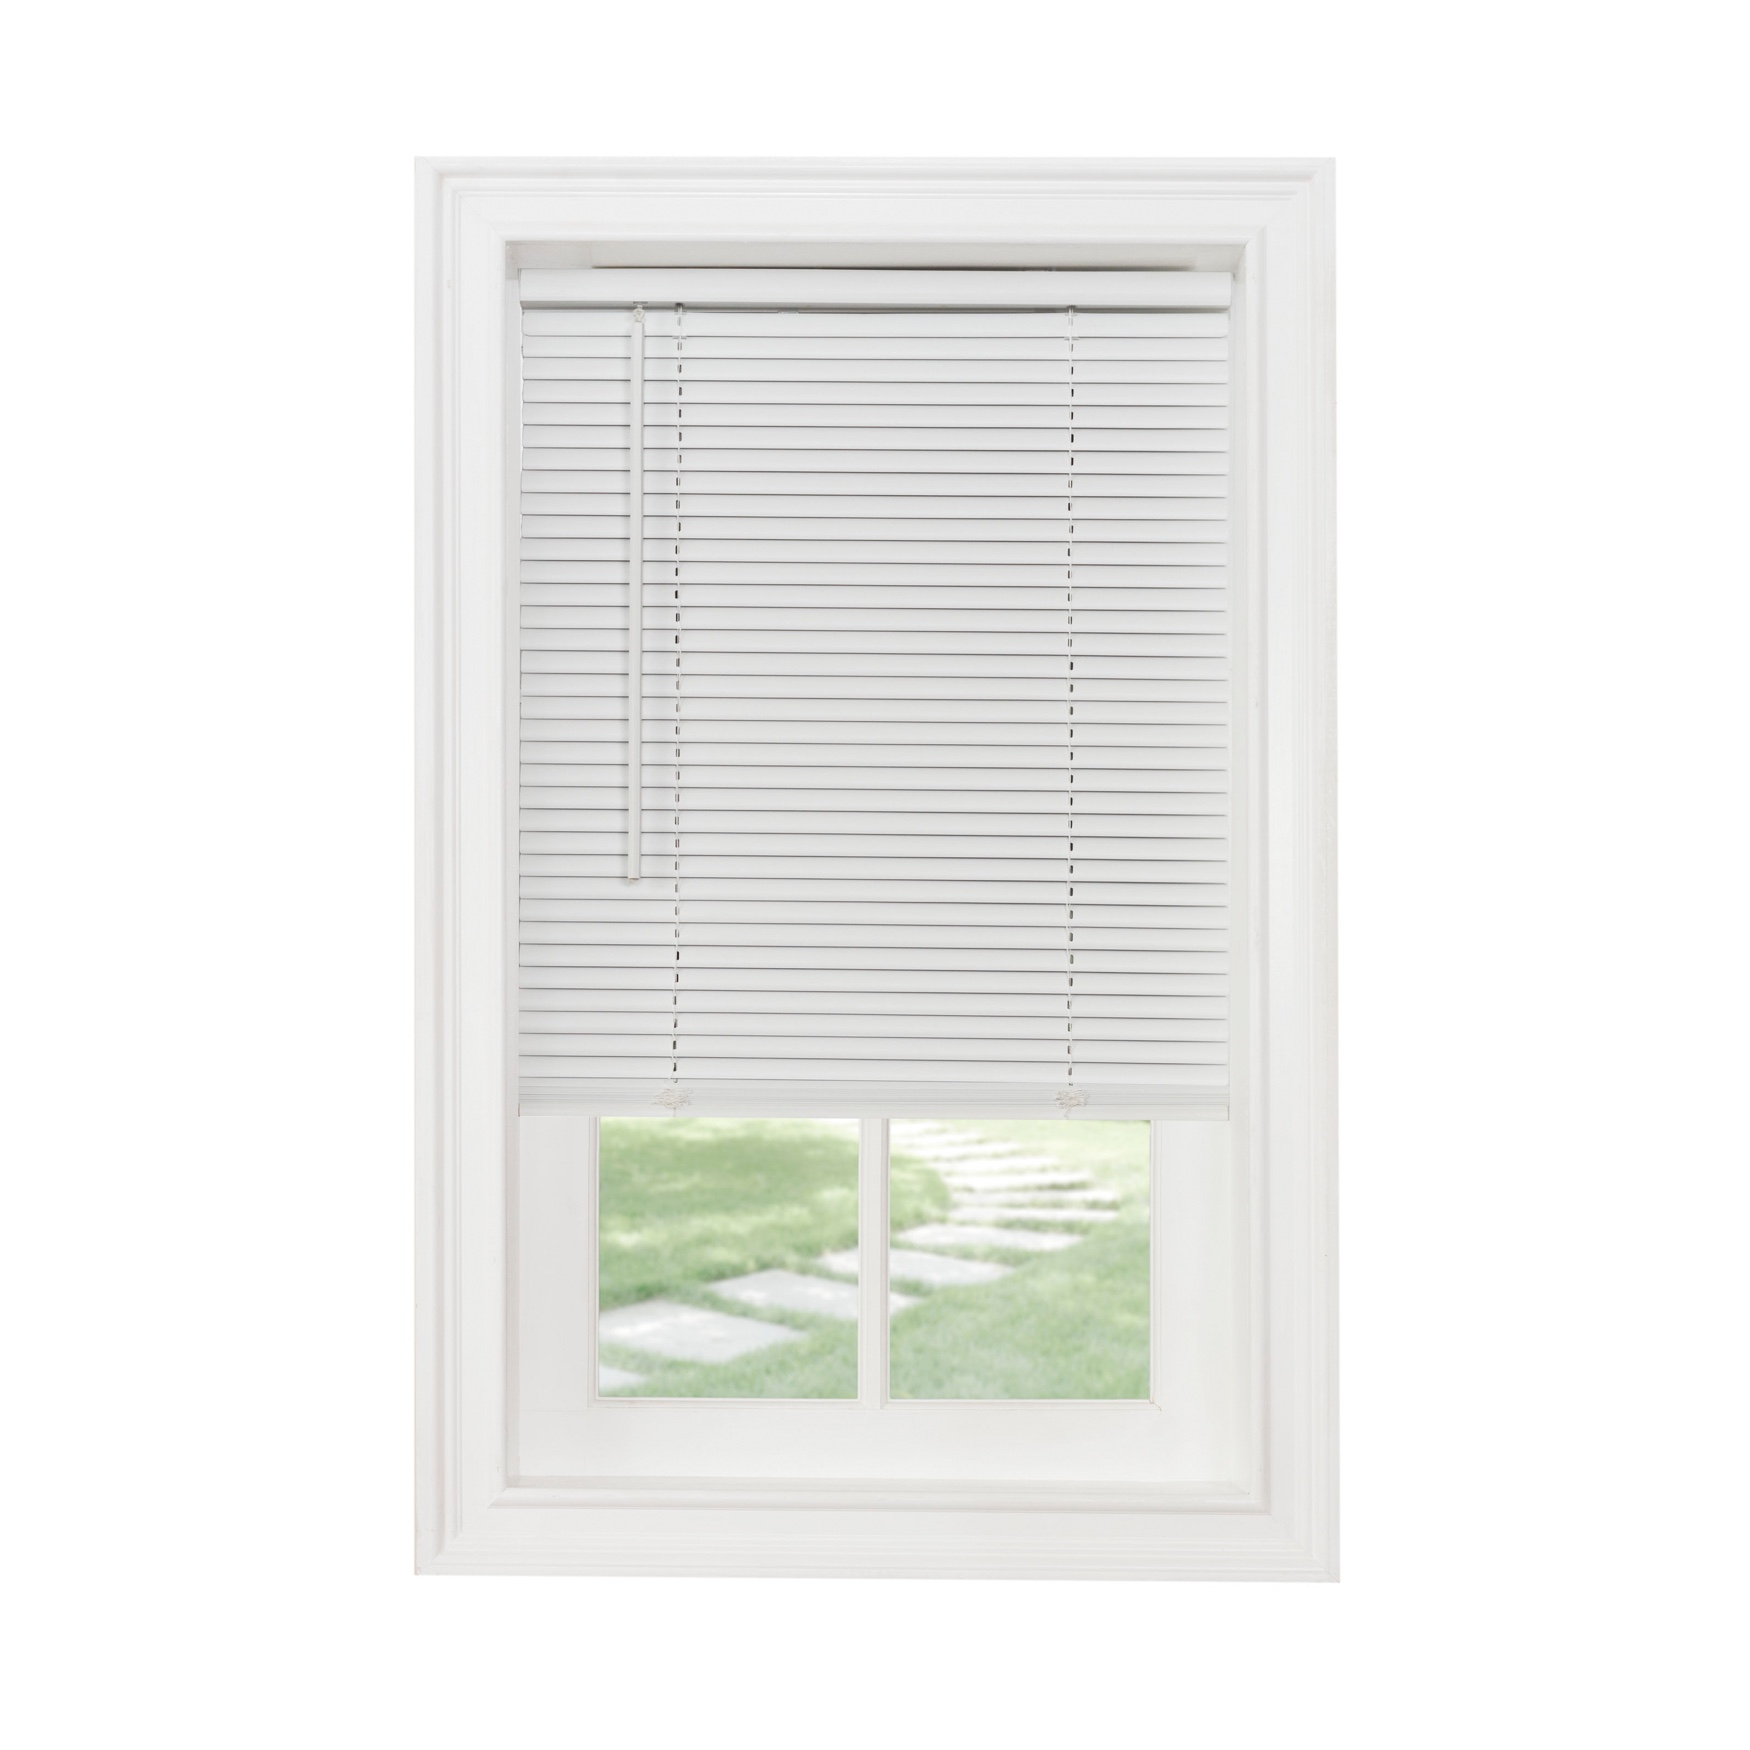 "Cordless GII Morningstar 1"" Light Filtering Mini Blind,"